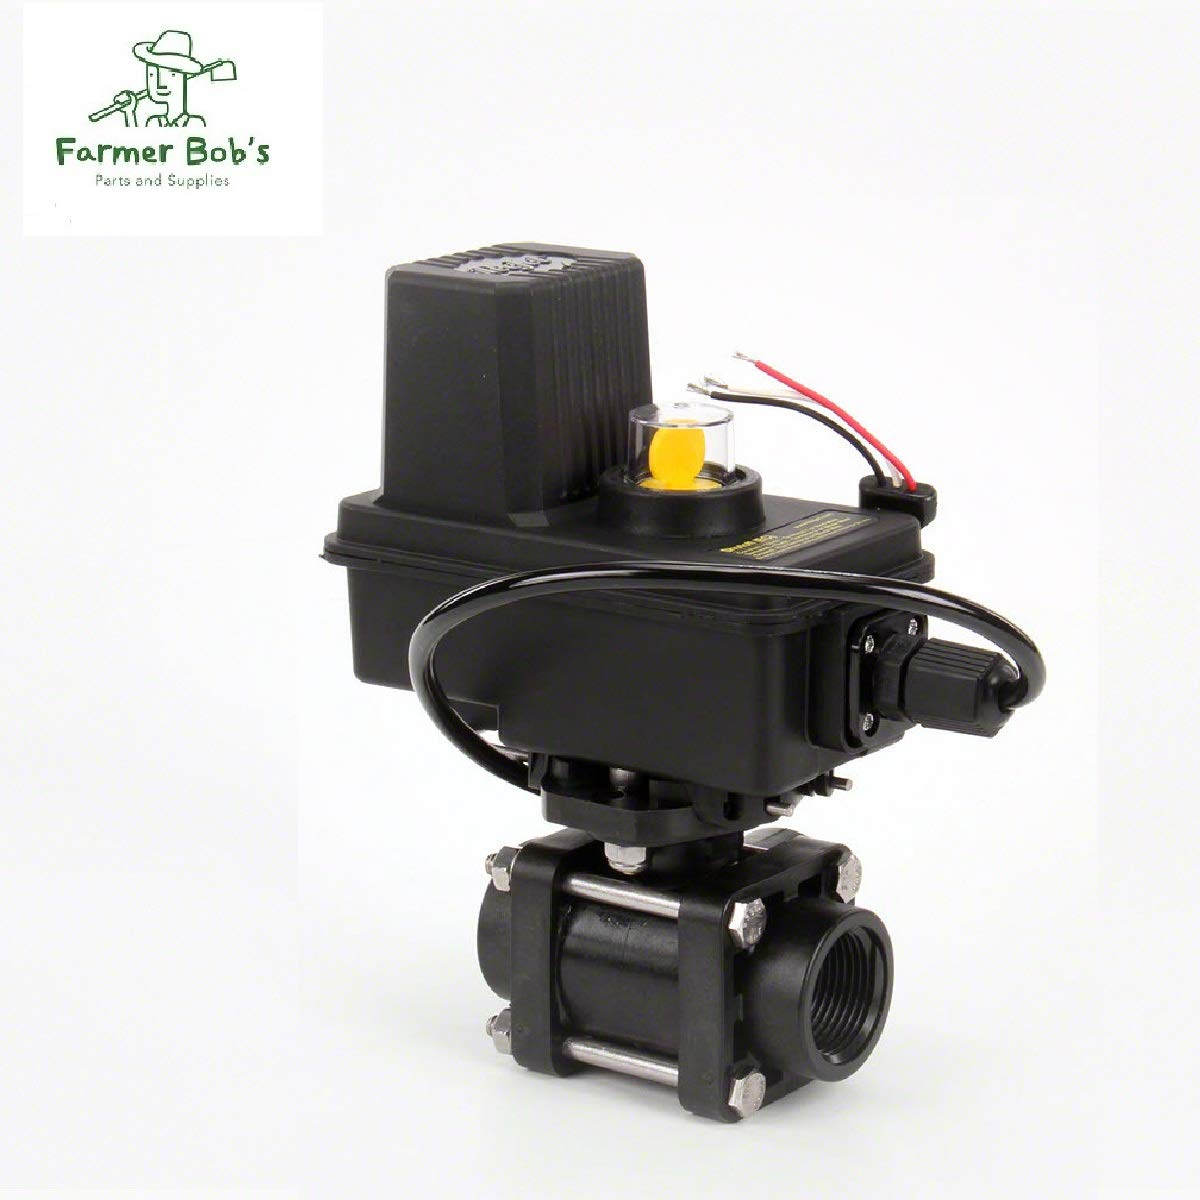 TeeJet 344 Series Electronic Shut Off Ball Valve 3-Way 1 Ports w//EC Motor Farmer Bobs Parts 344BEC-34-C